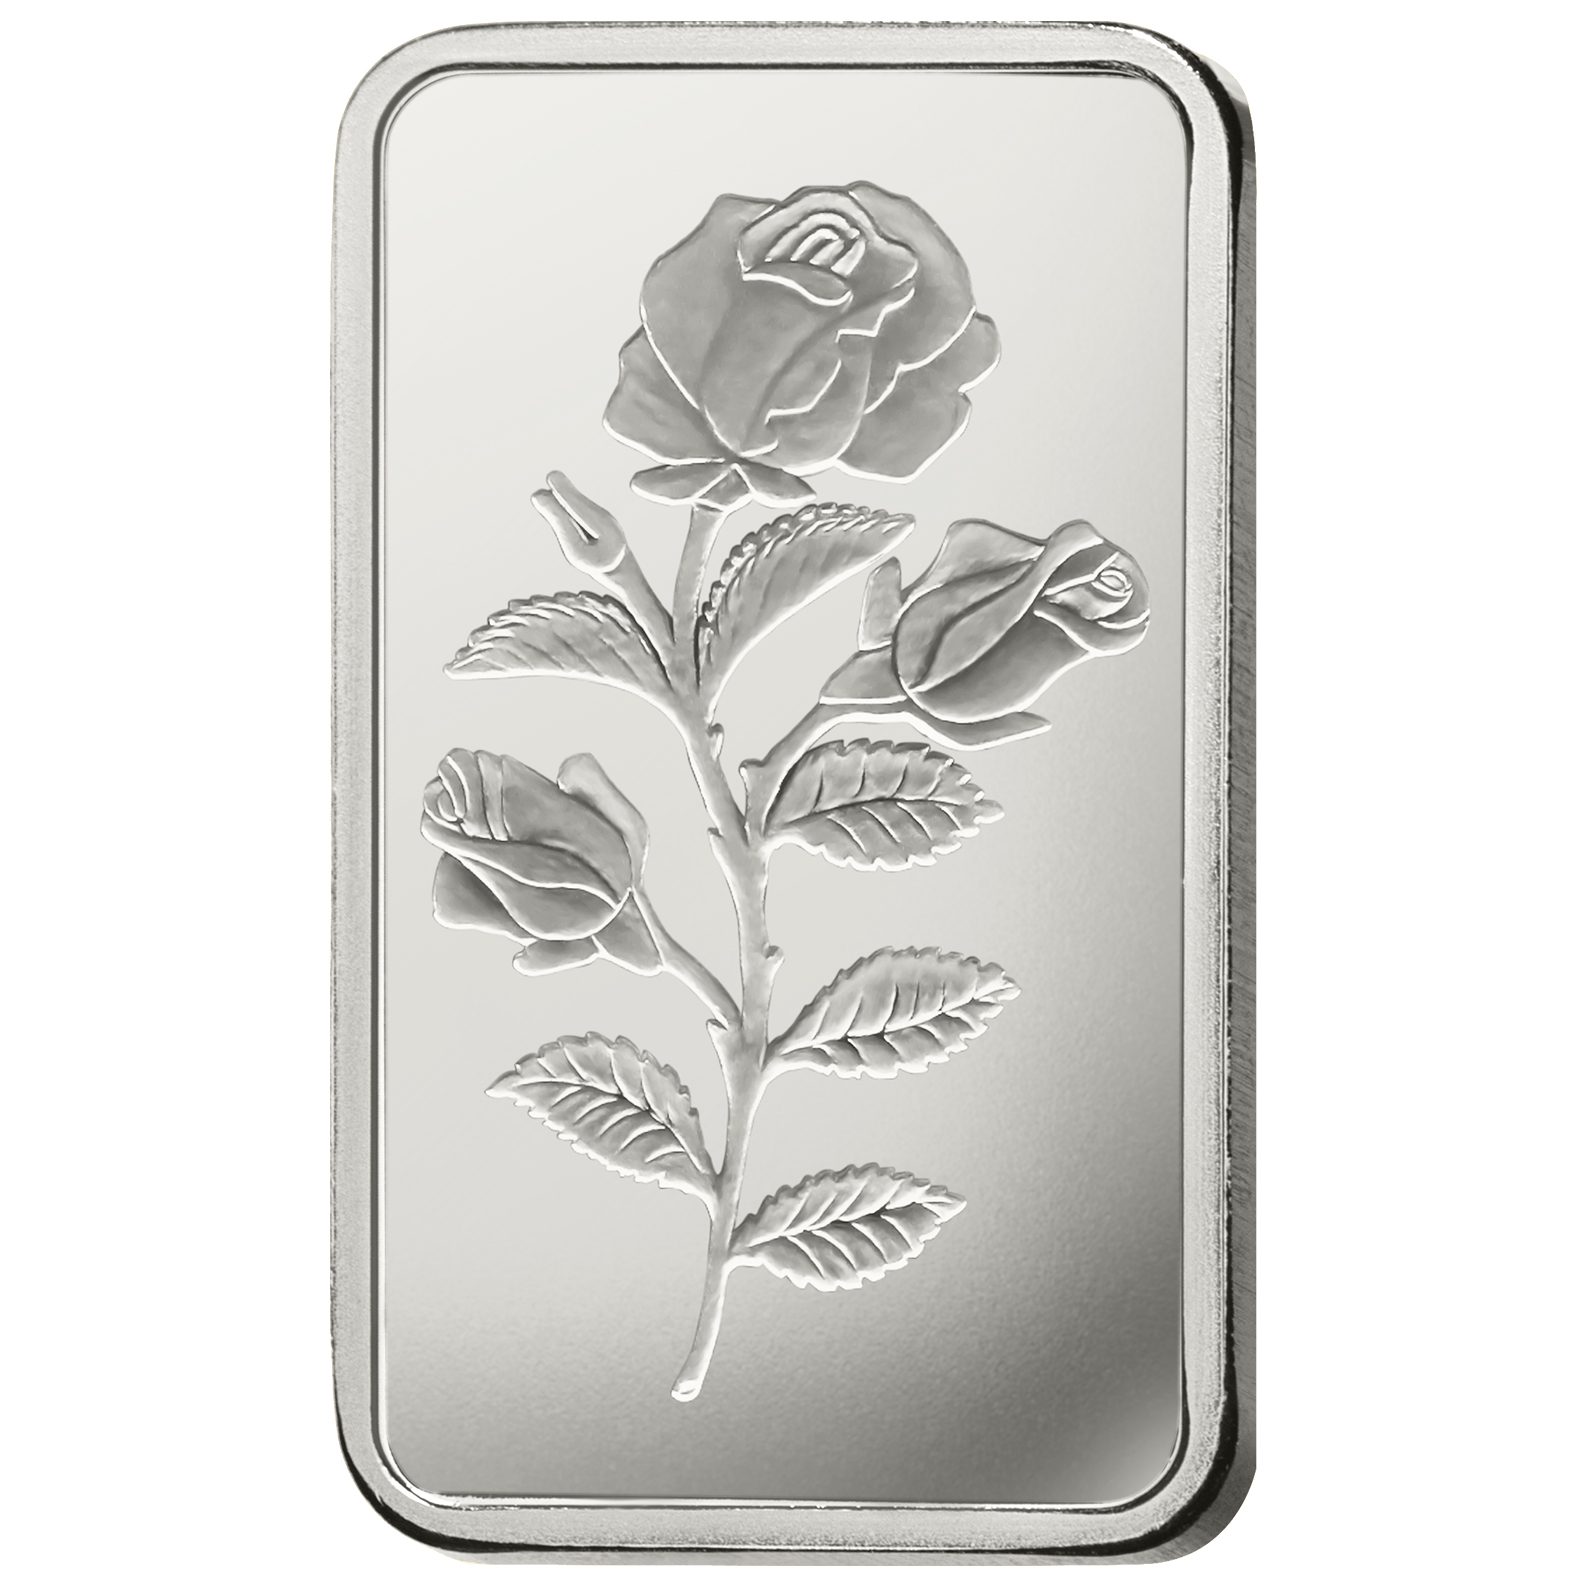 10 Gram Silver Bar Pamp Suisse Rosa Gold Avenue